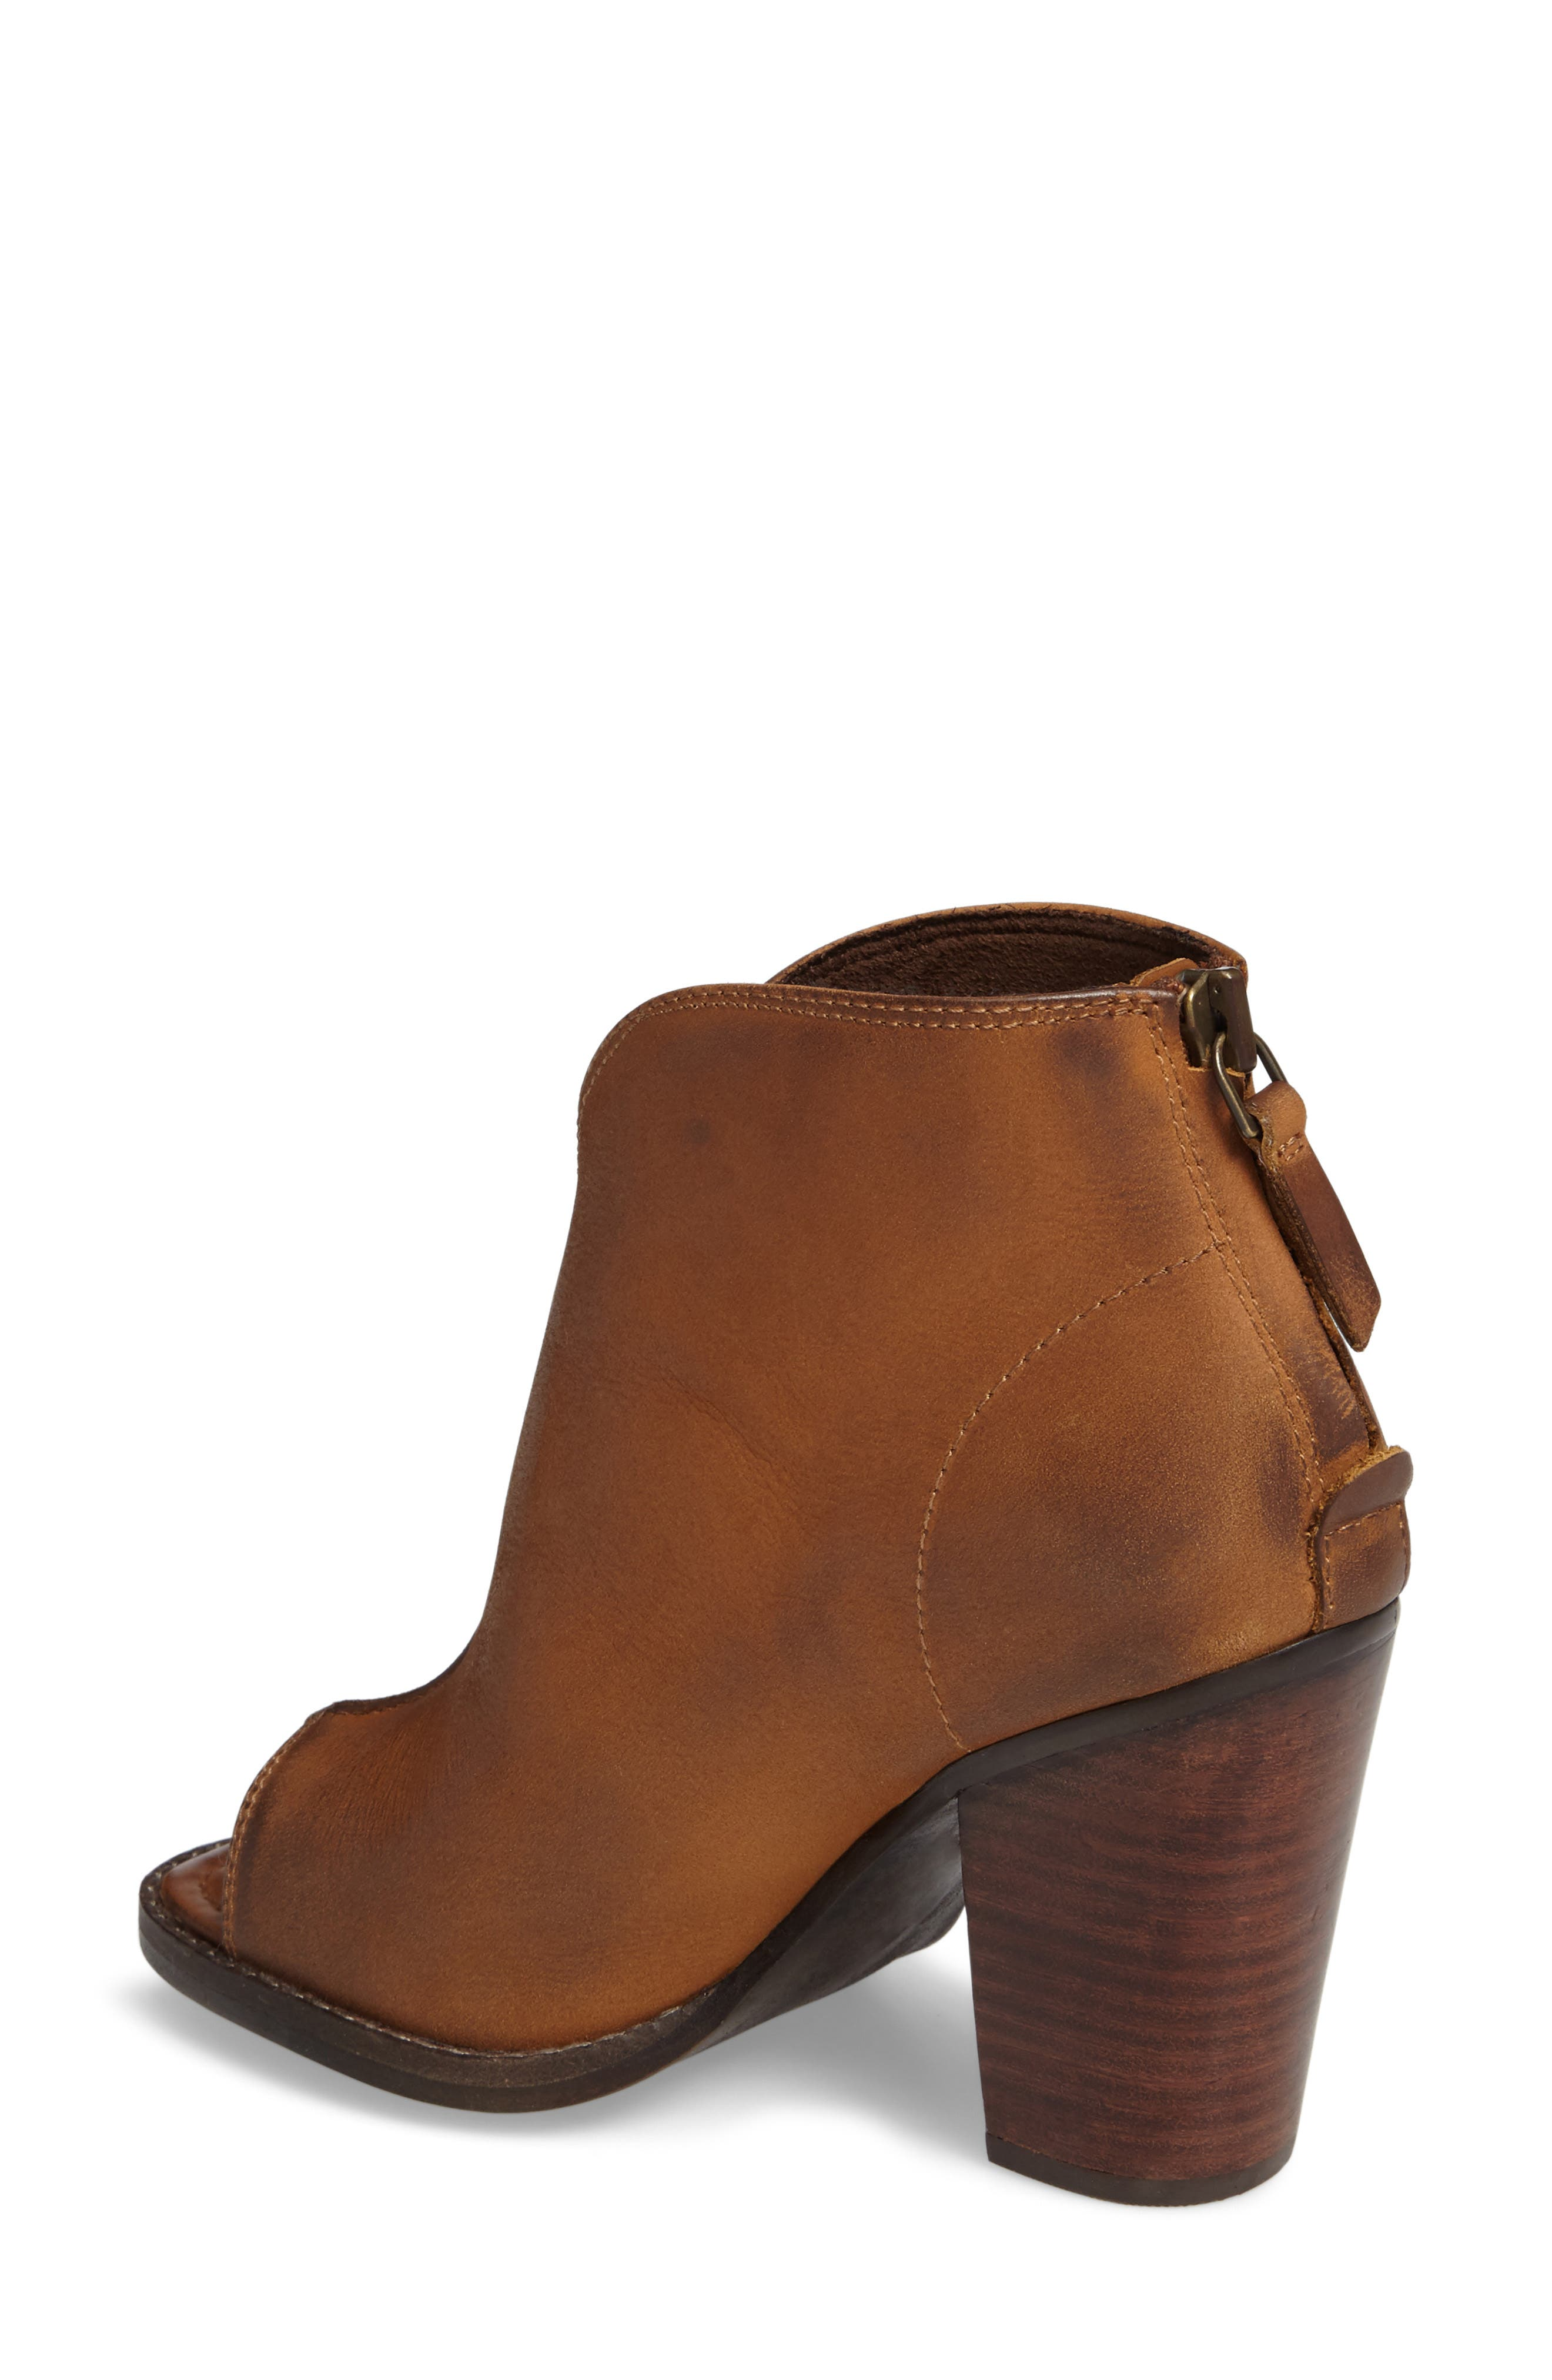 Lindsley Peep Toe Bootie,                             Alternate thumbnail 2, color,                             Tennessee Tan Leather